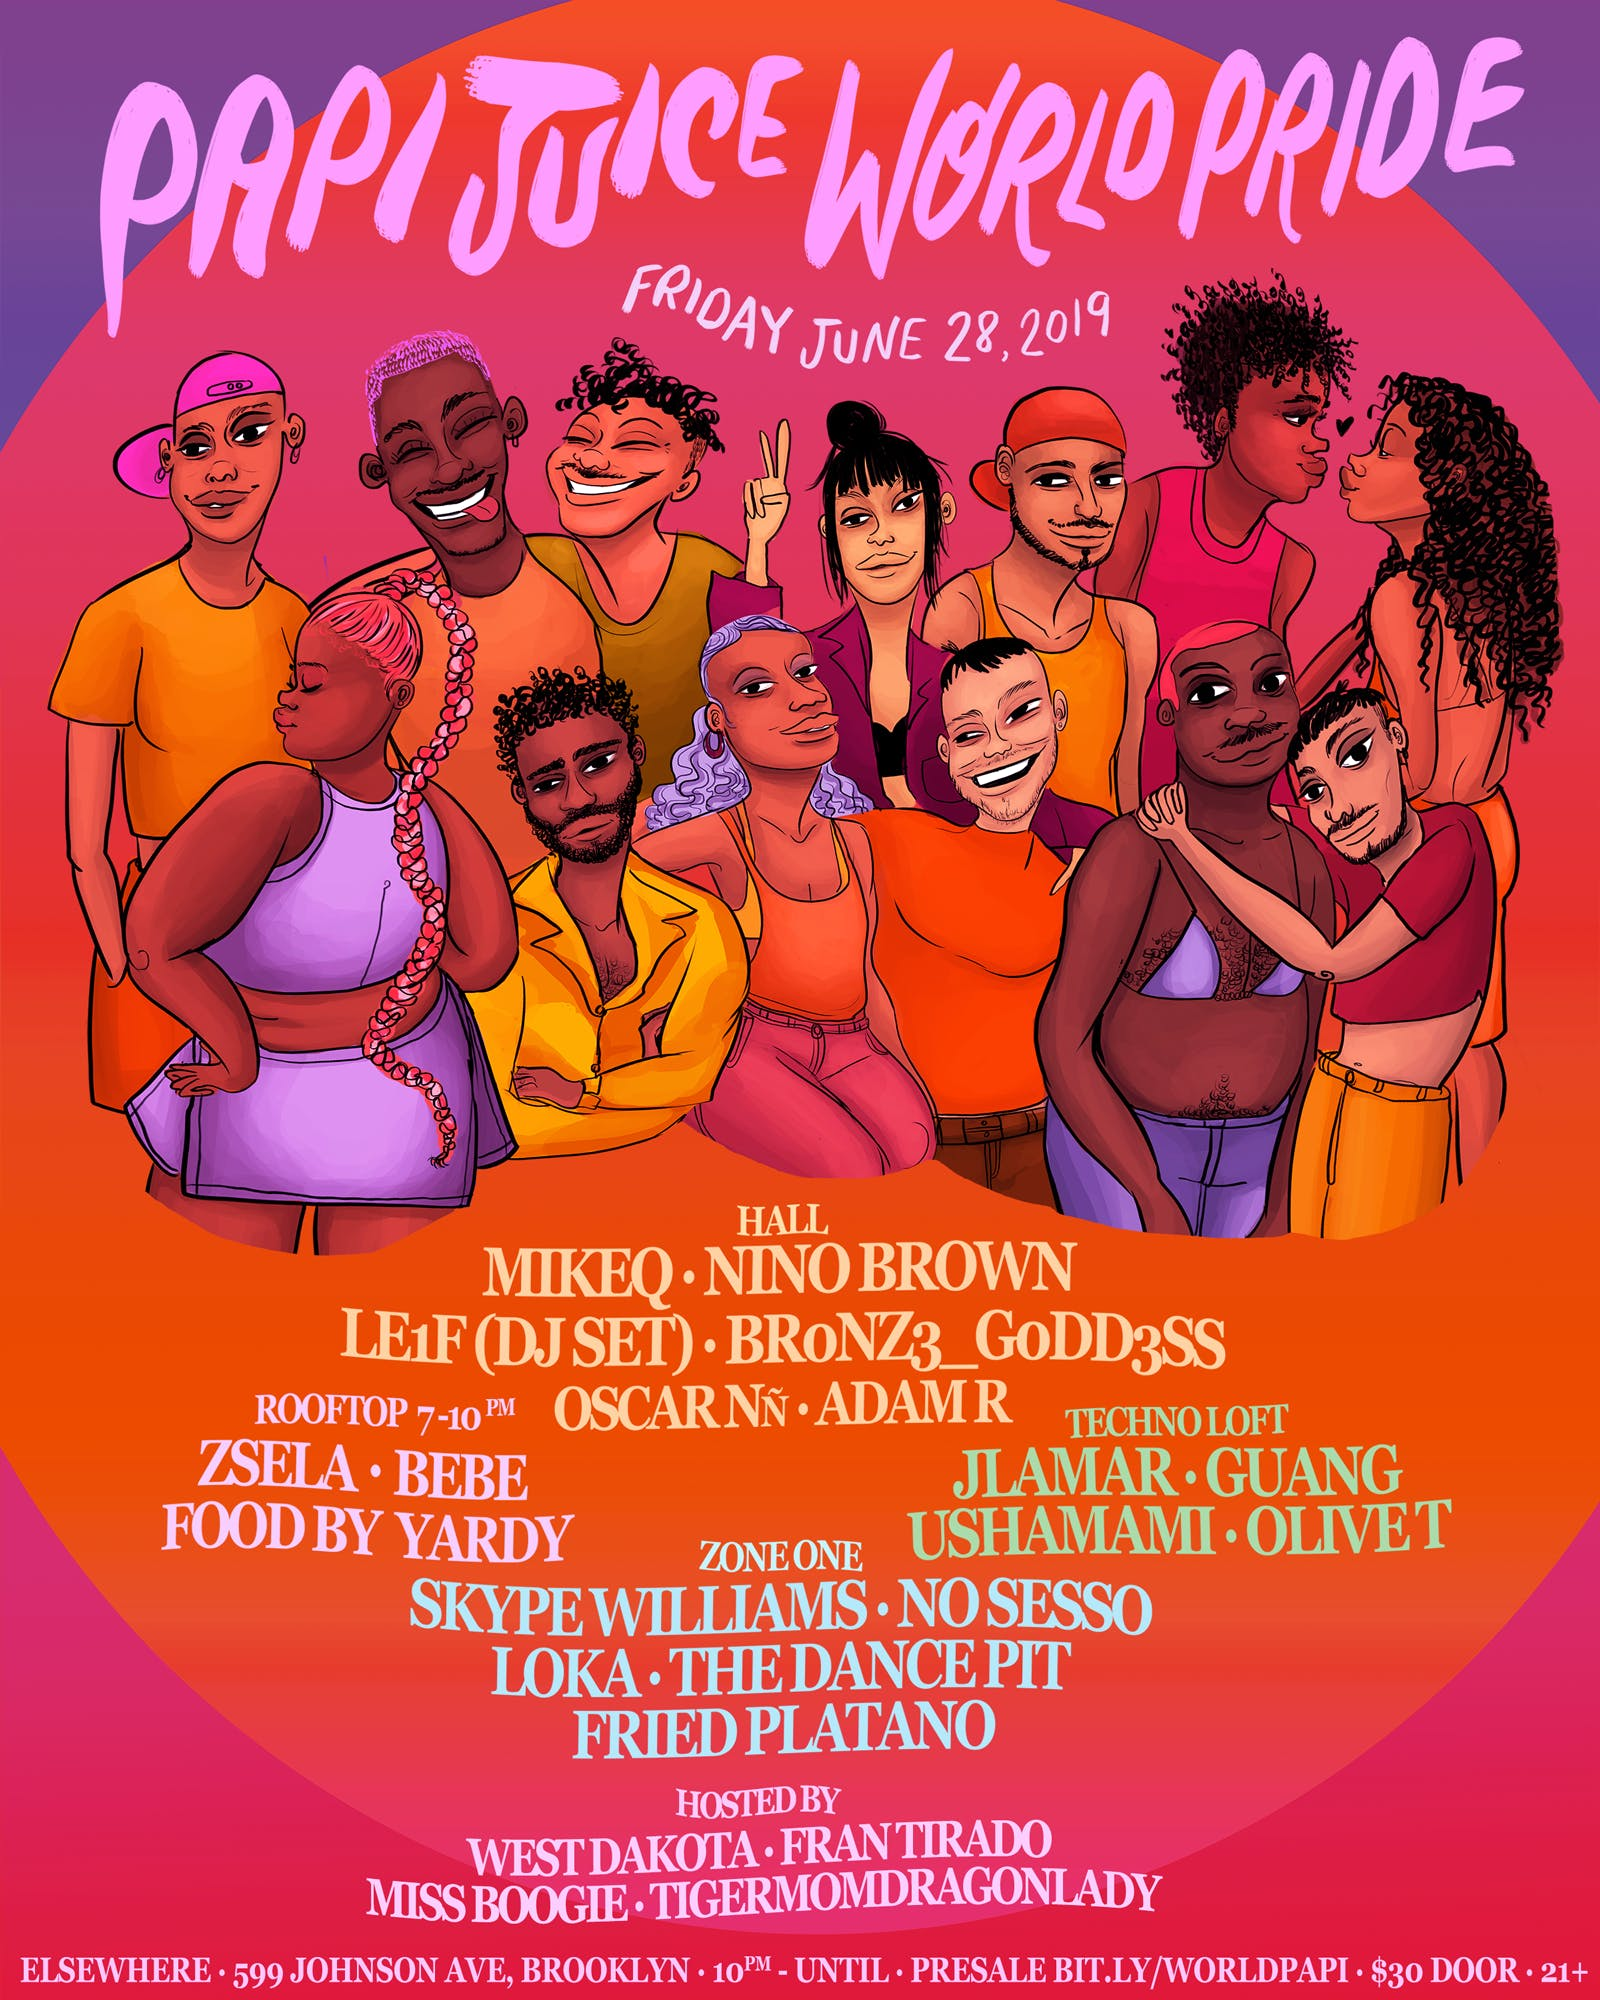 Papi Juice Vol. 47: World Pride w/ MikeQ, br0nz3_g0dd3ss, LE1F (DJ Set), Nino Brown & More